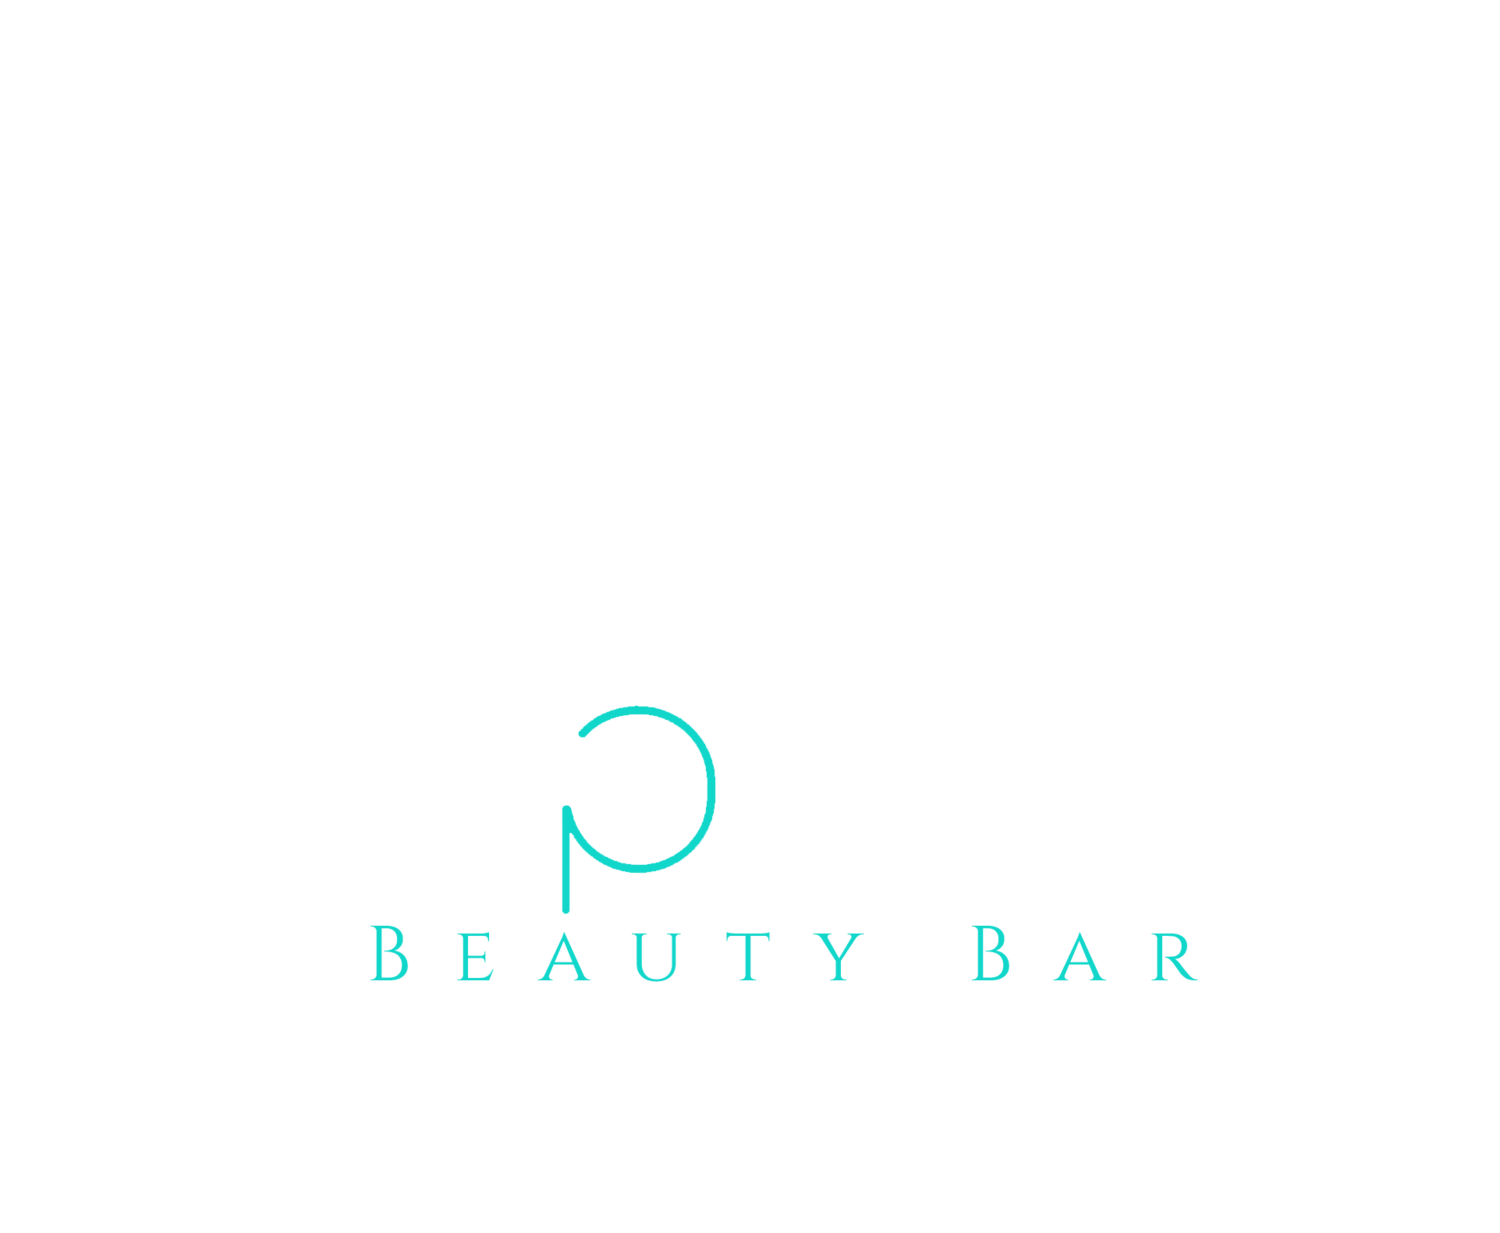 BPure Beauty Bar